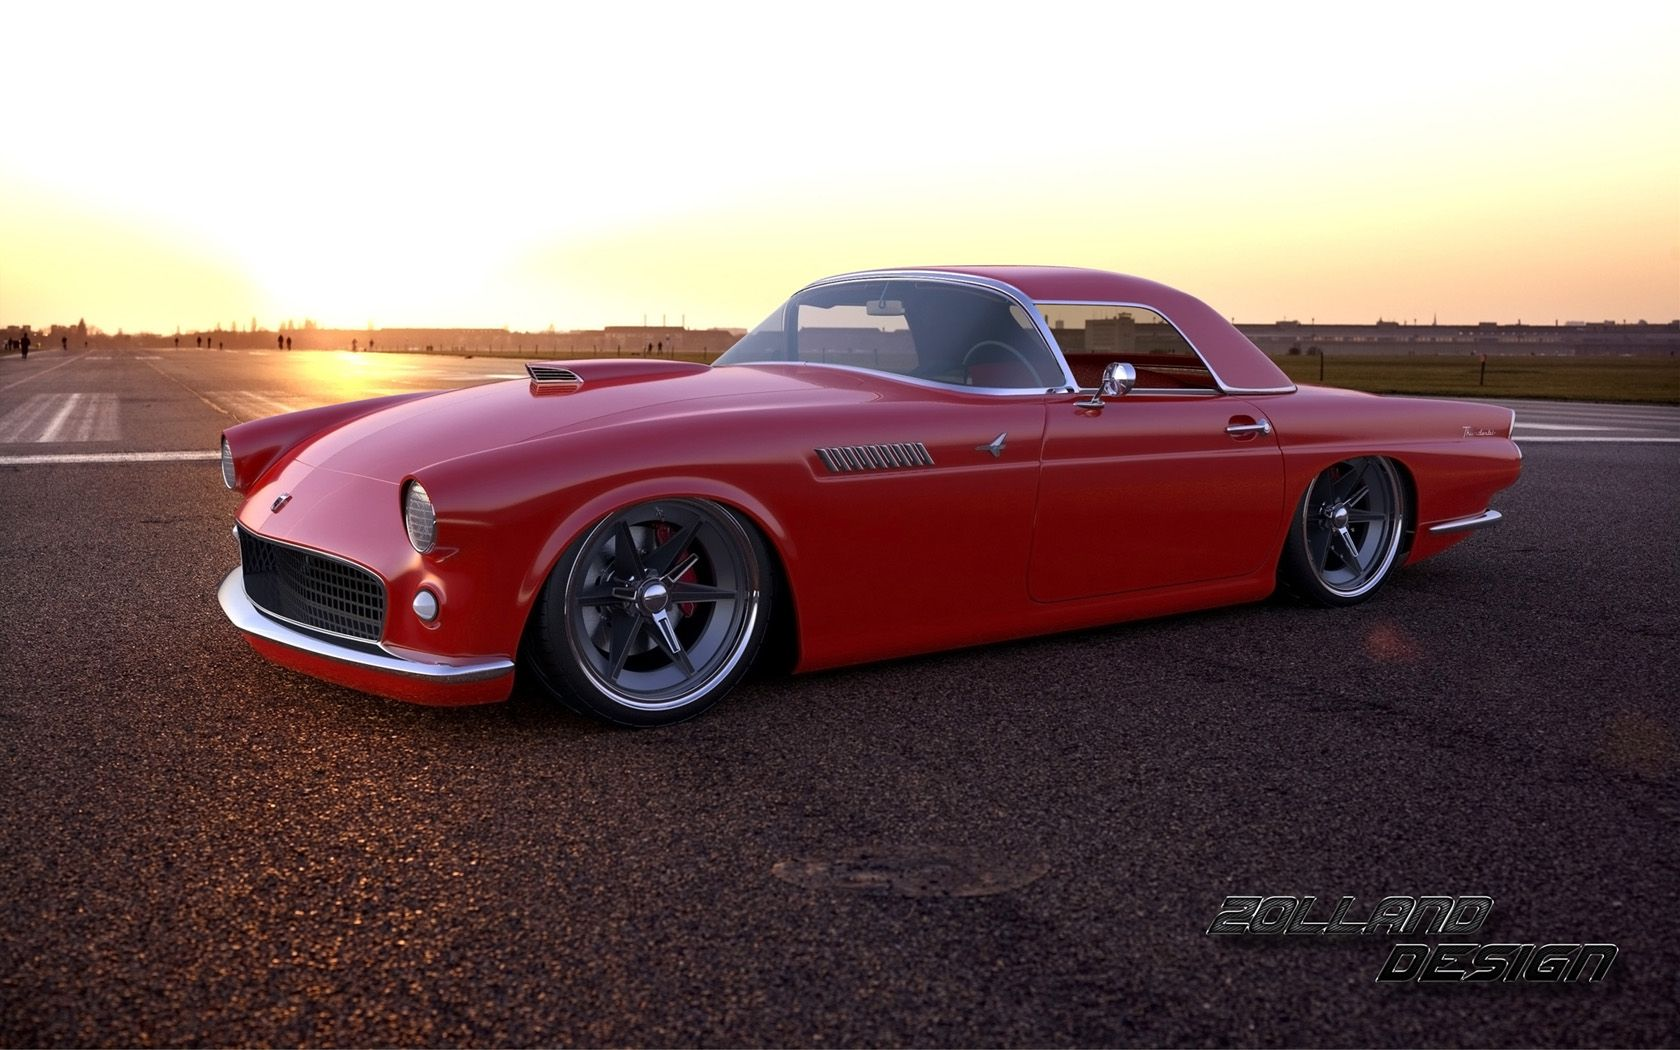 Pin Auf Cool Cars Motorcycles